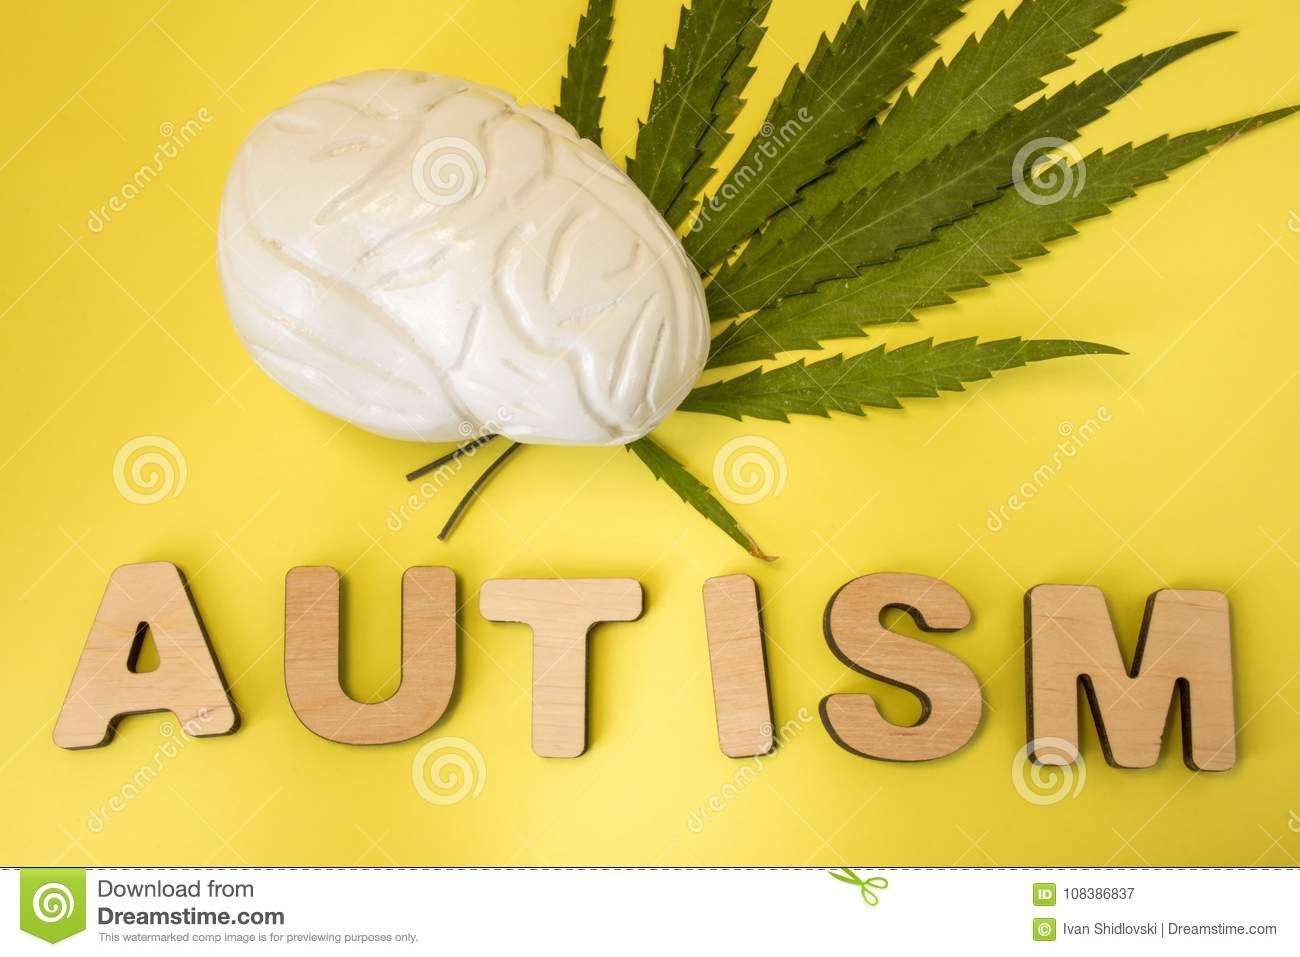 Marijuana or cannabis and treatment of autism concept photo. Figure of human brain lies on green leaves of cannabis plant near thr